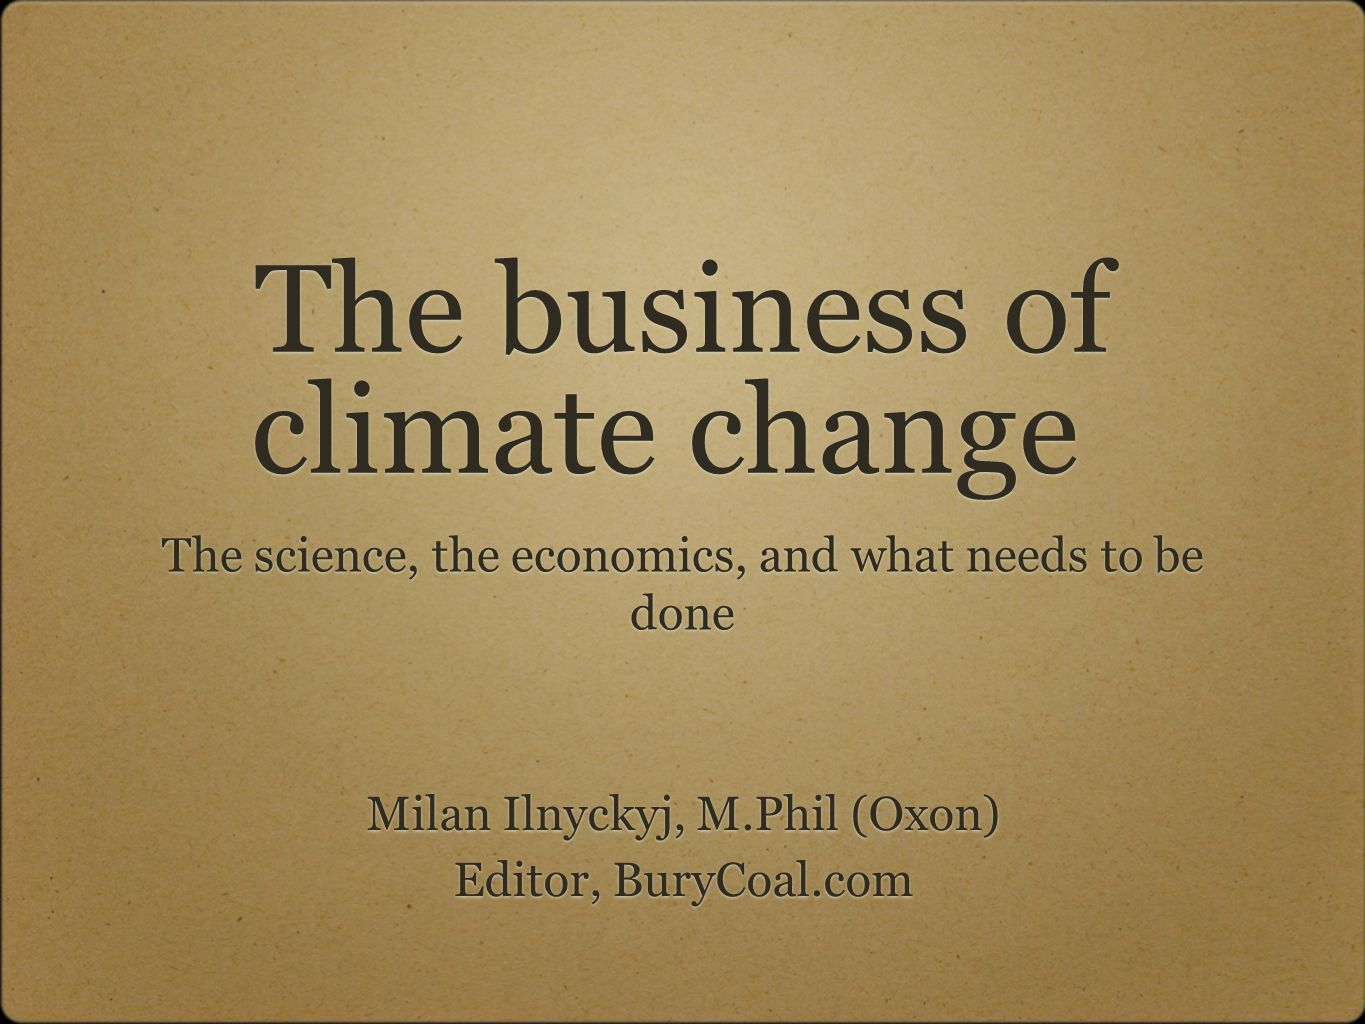 The business of climate change The science, the economics, and what needs to be done Milan Ilnyckyj, M.Phil (Oxon) Editor, BuryCoal.com Milan Ilnyckyj, M.Phil (Oxon) Editor, BuryCoal.com